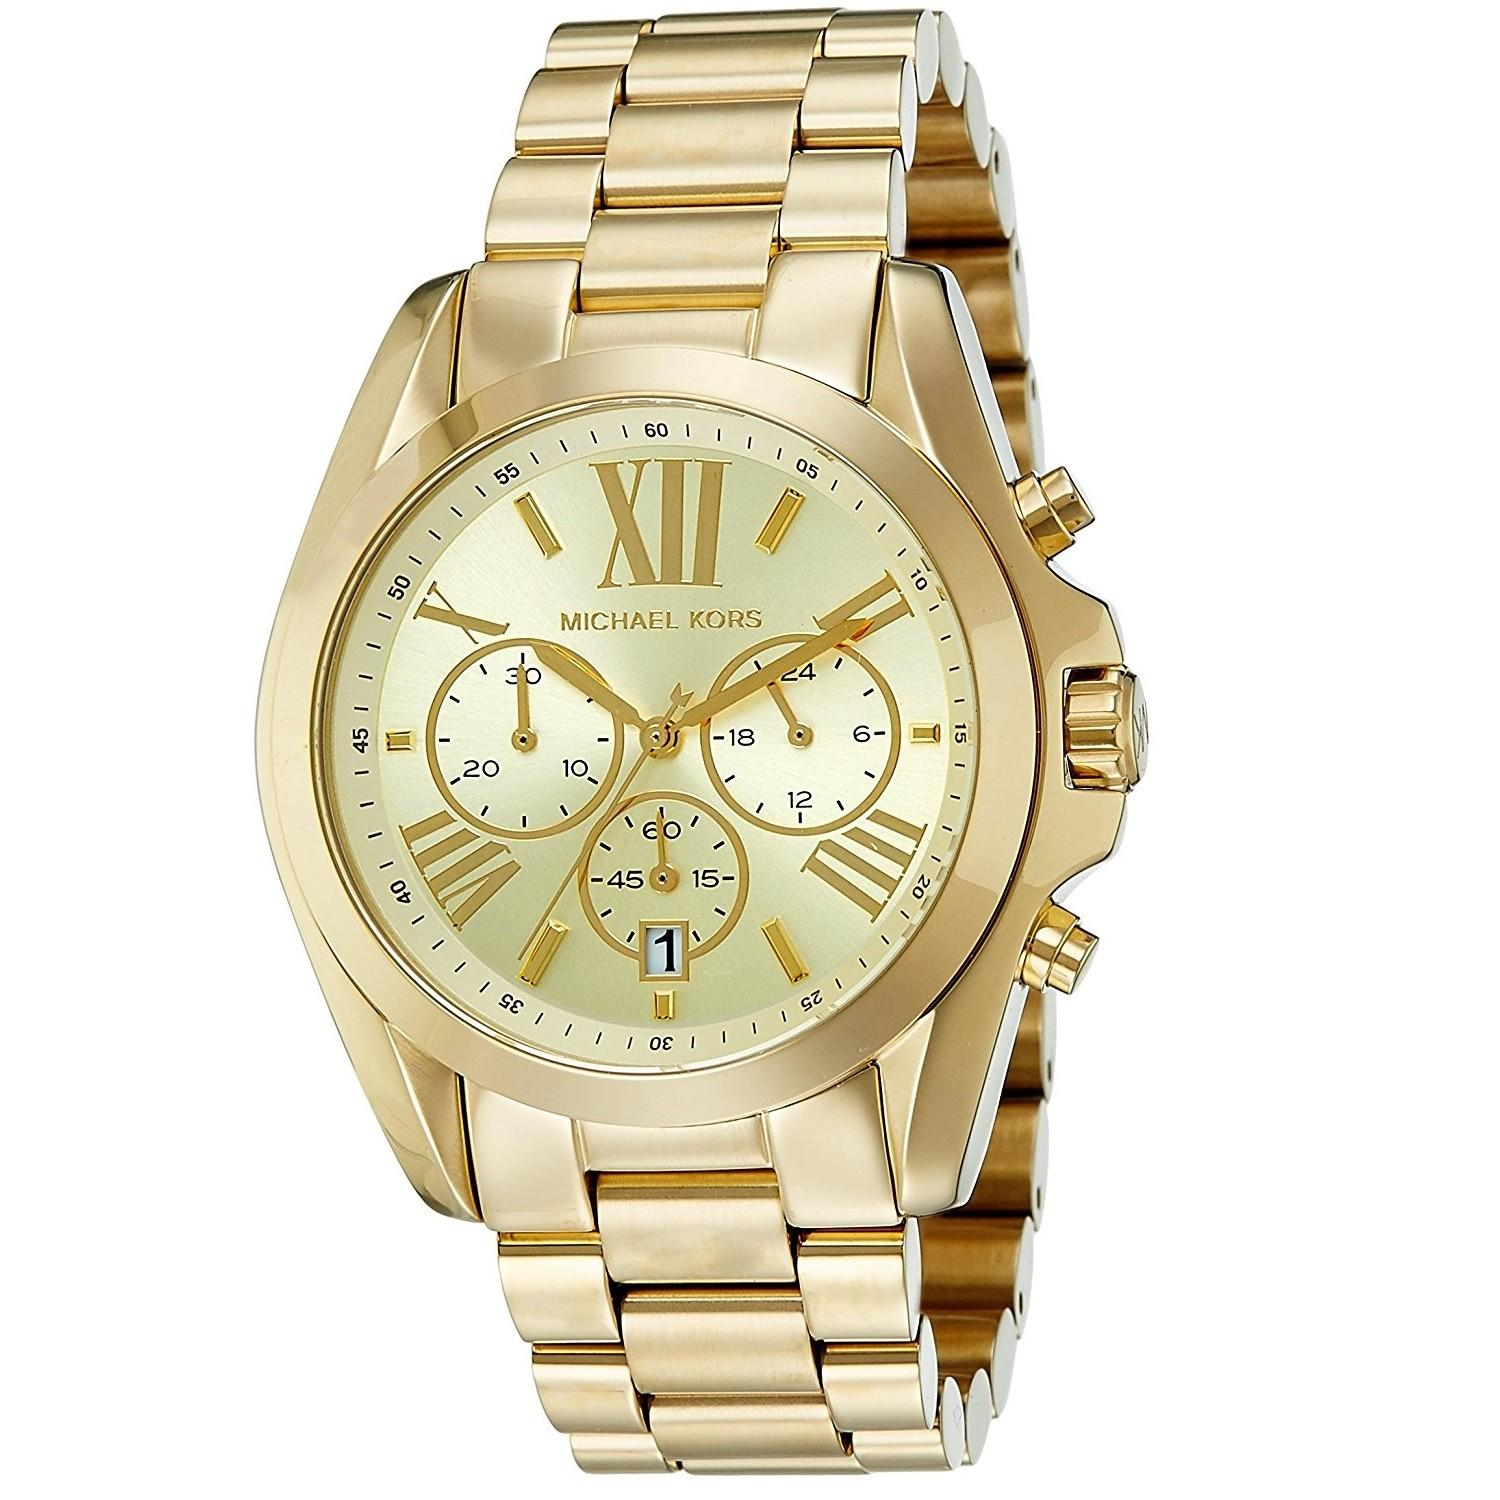 f0b3639bc213 MK Michael Kors Oversized Bradshaw MK5605 (All Gold) Stainless Steel Strap  Watch for Men